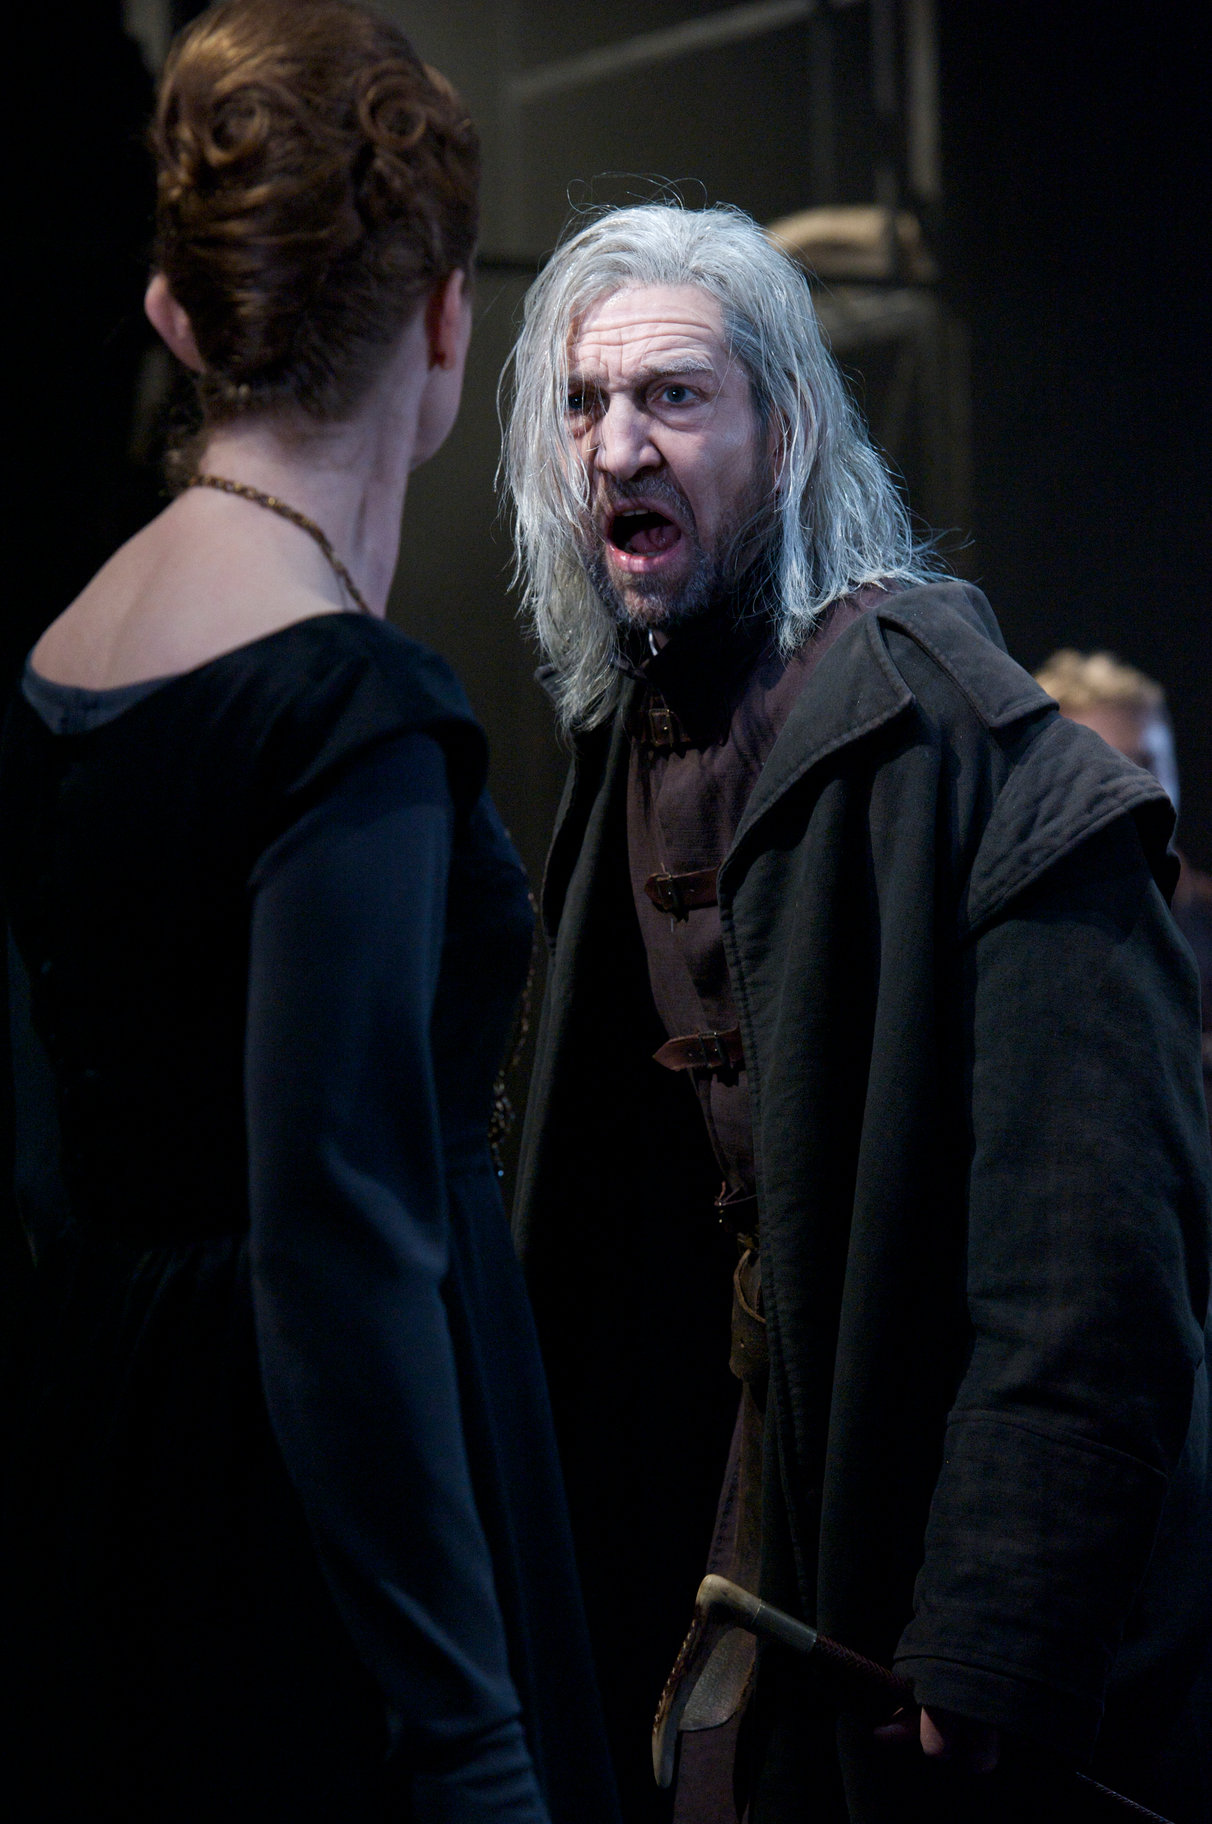 A man in a black coat with wild white hair shouts at a woman in a midnight blue dress.